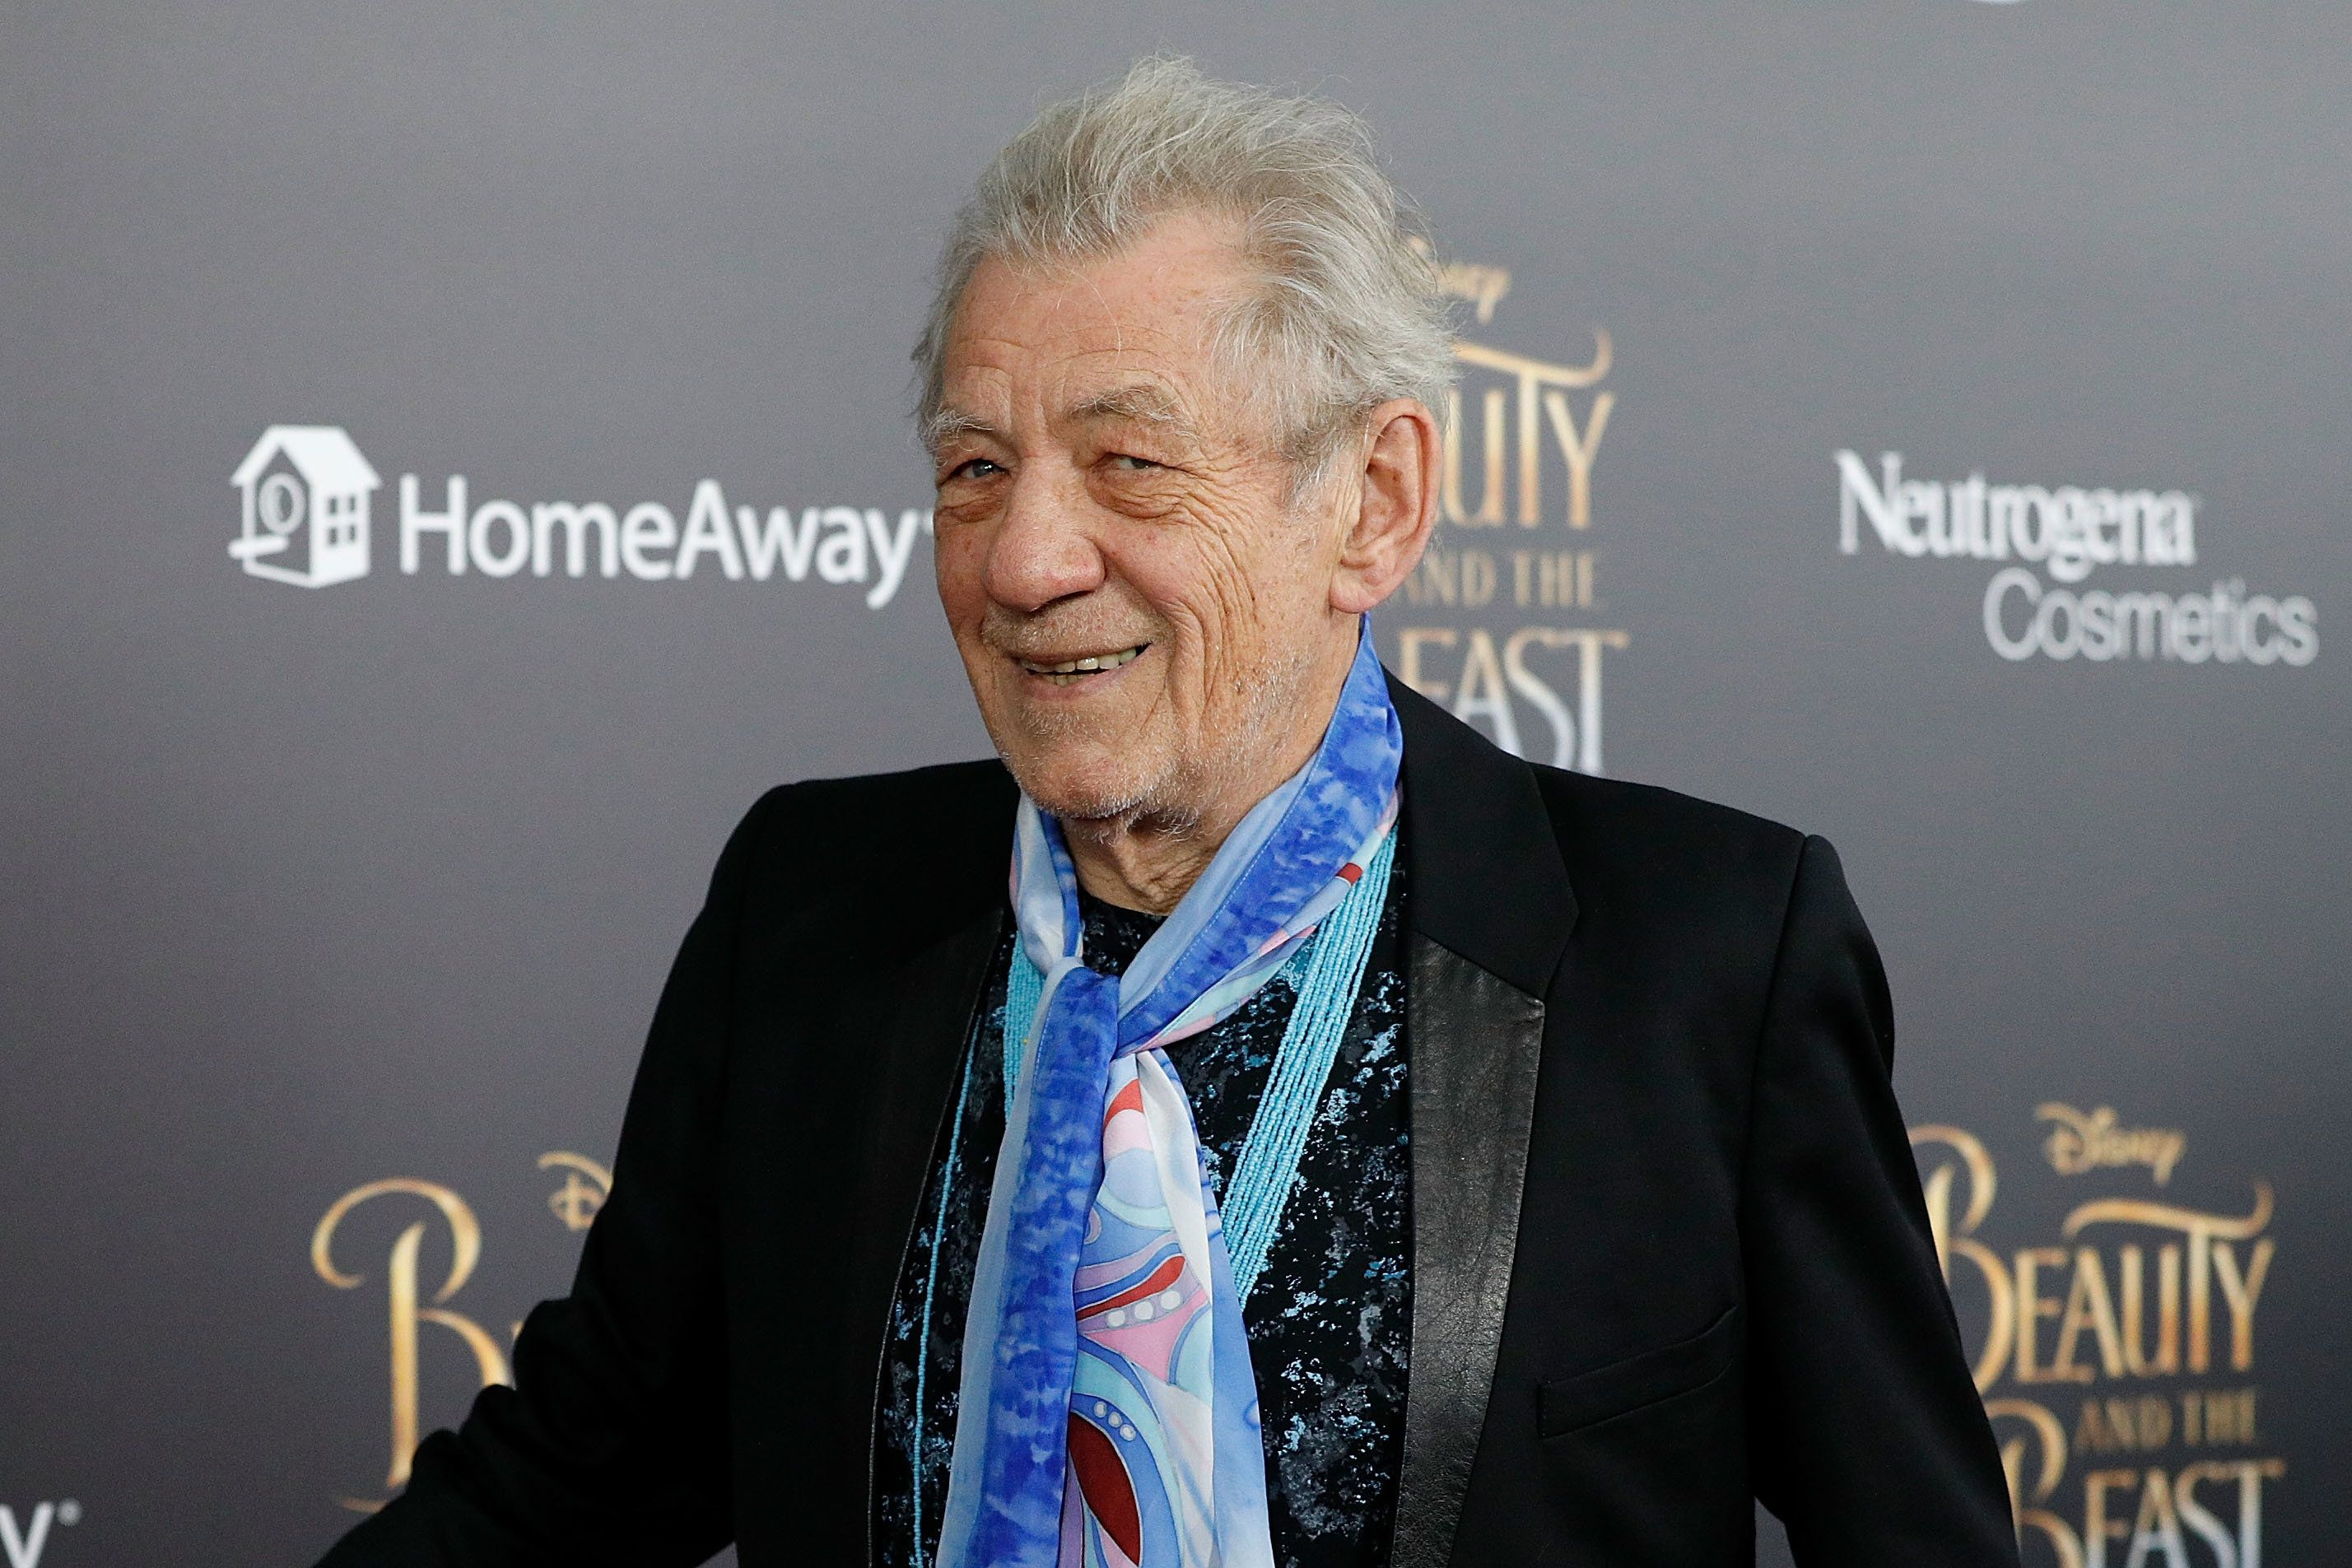 NEW YORK, NY - MARCH 13:  Actor Sir Ian McKellen attends the 'Beauty and the Beast' New York screening at Alice Tully Hall, Lincoln Center on March 13, 2017 in New York City.  (Photo by Taylor Hill/FilmMagic)